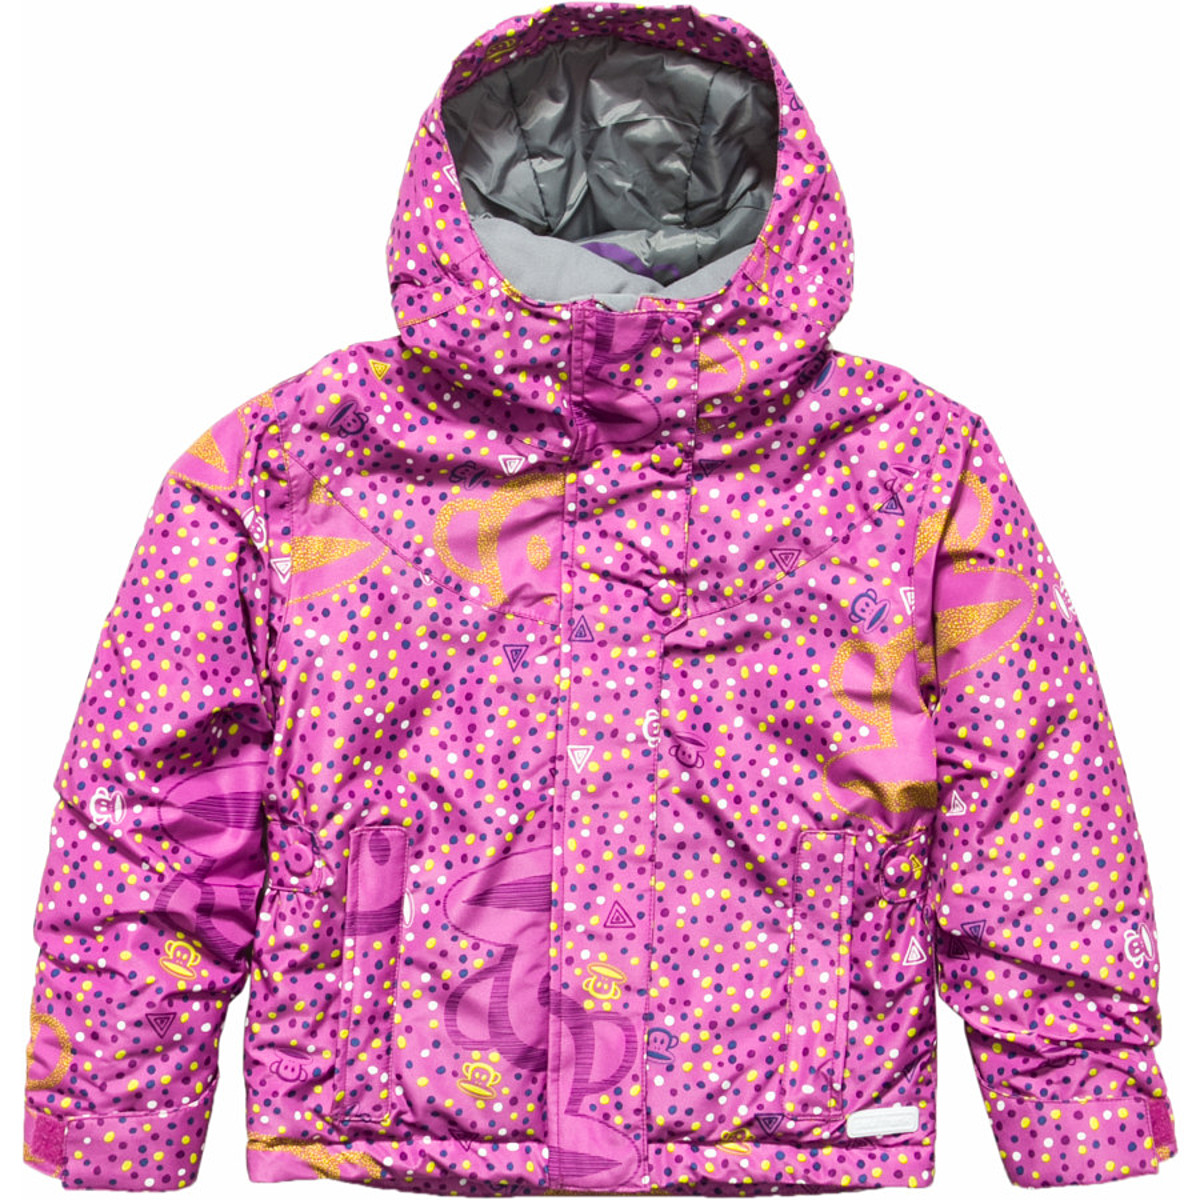 Paul Frank Julius Pfunfetti Insulated Jacket